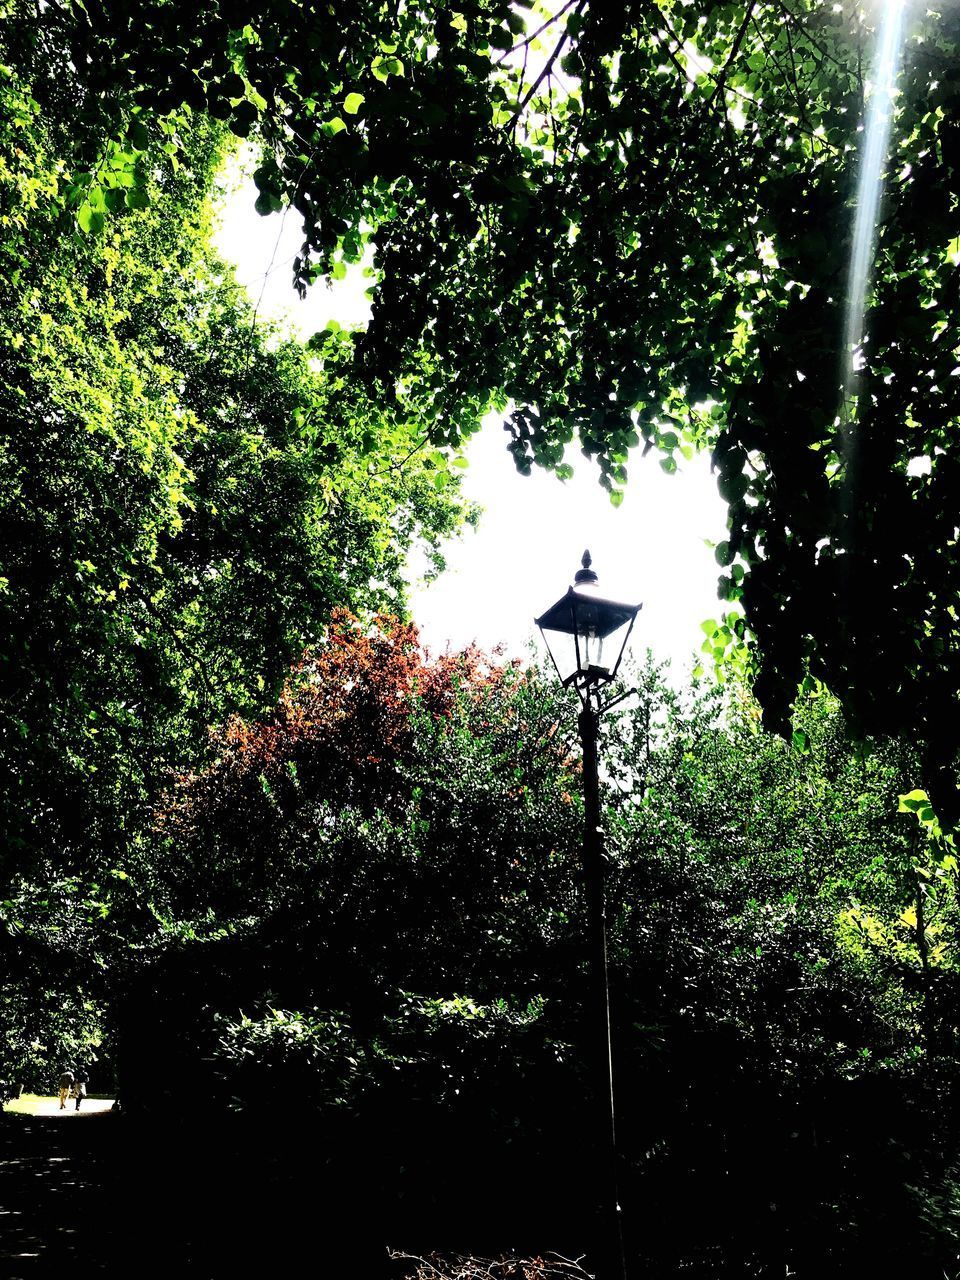 tree, lighting equipment, low angle view, outdoors, street light, no people, growth, day, gas light, silhouette, nature, illuminated, technology, beauty in nature, sky